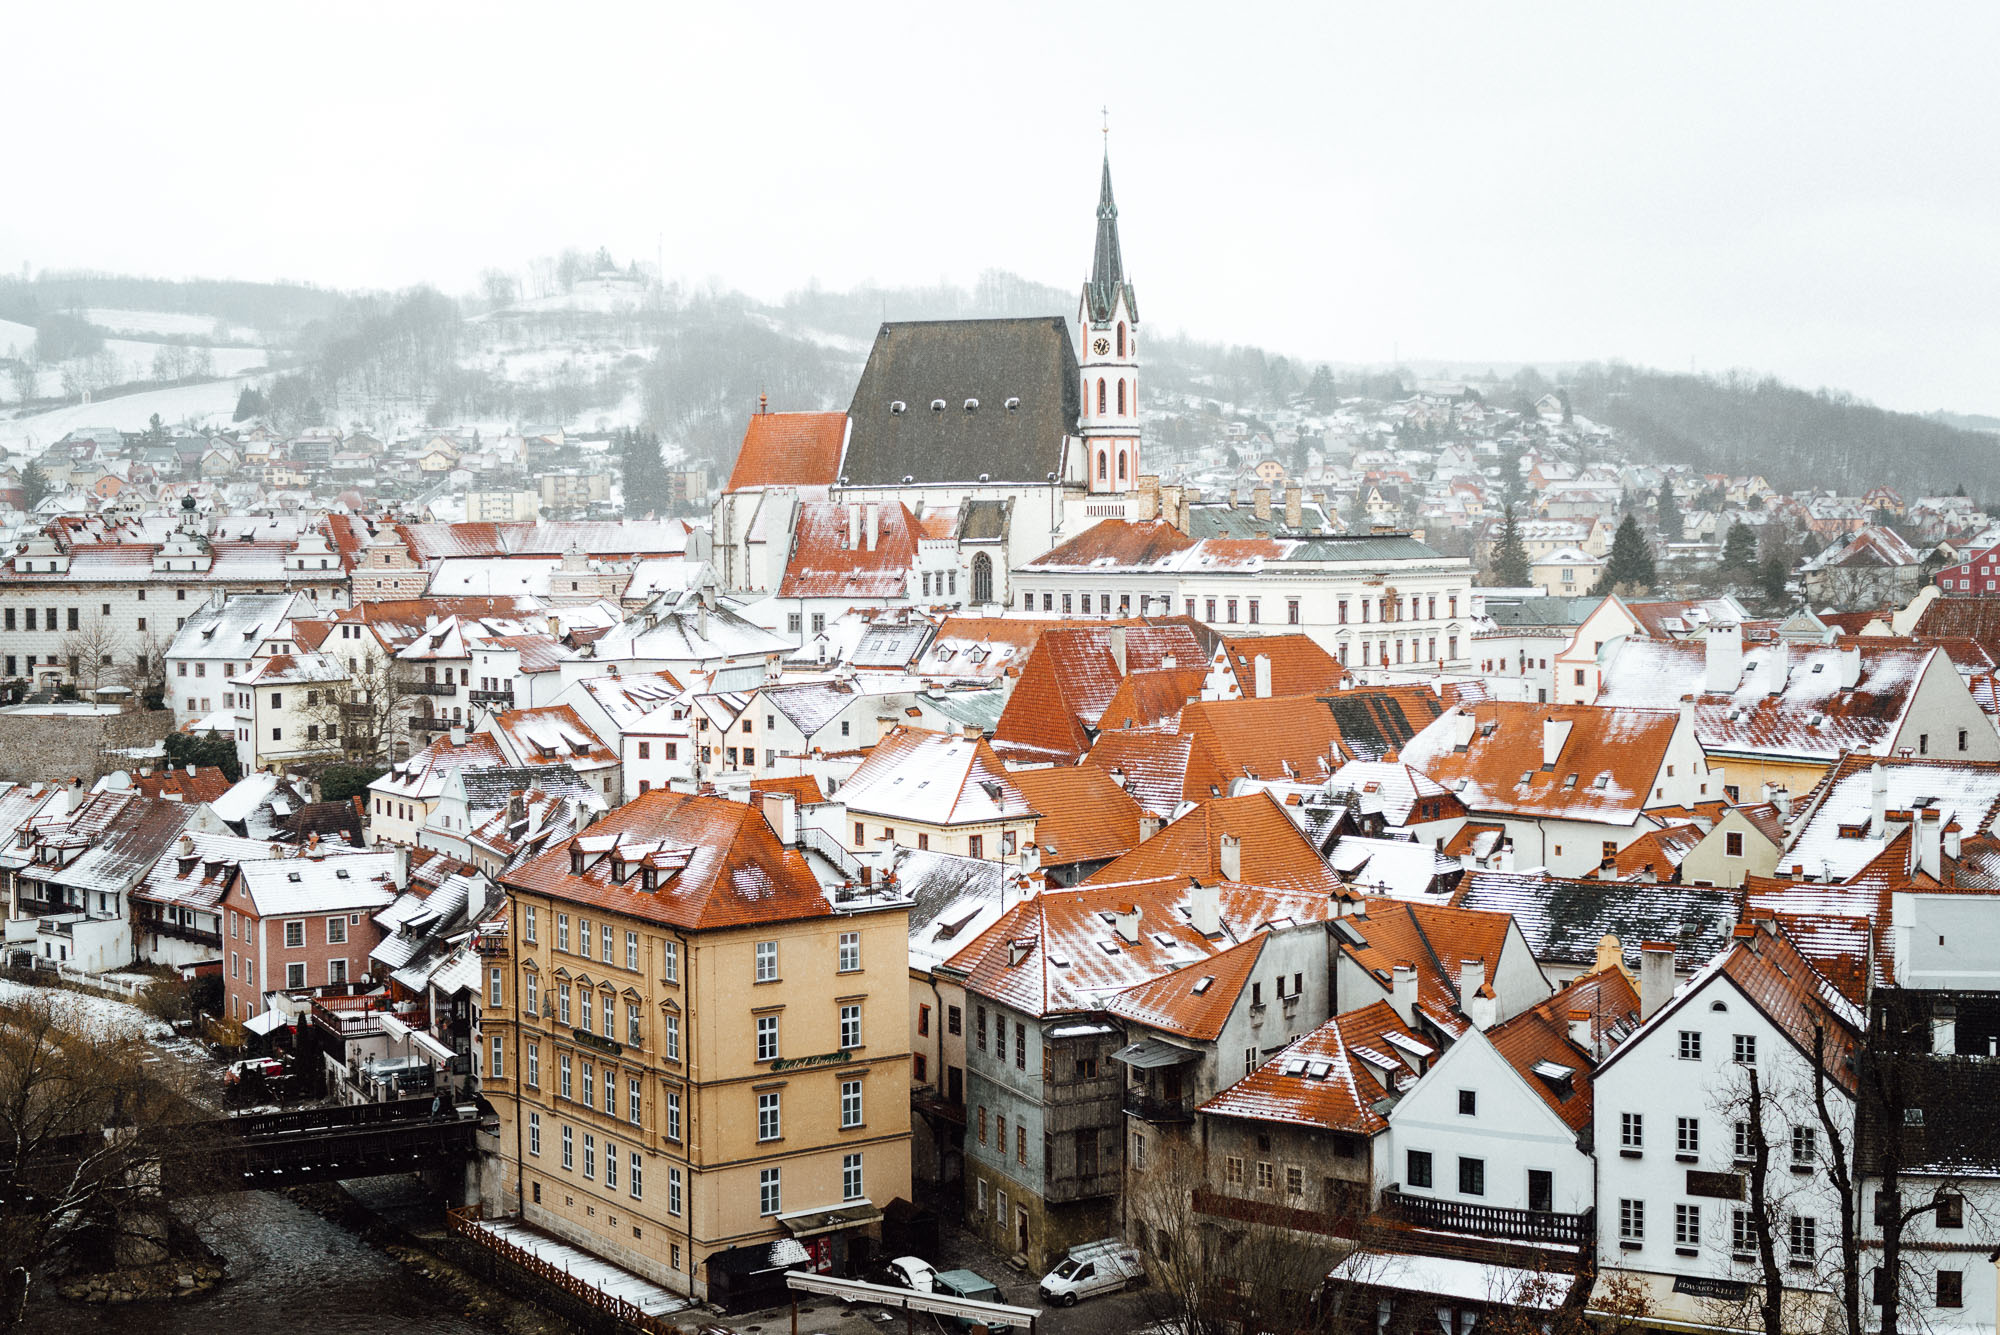 View of Cesky Krumlov from Cesky Krumlov Castle grounds in Czech Republic